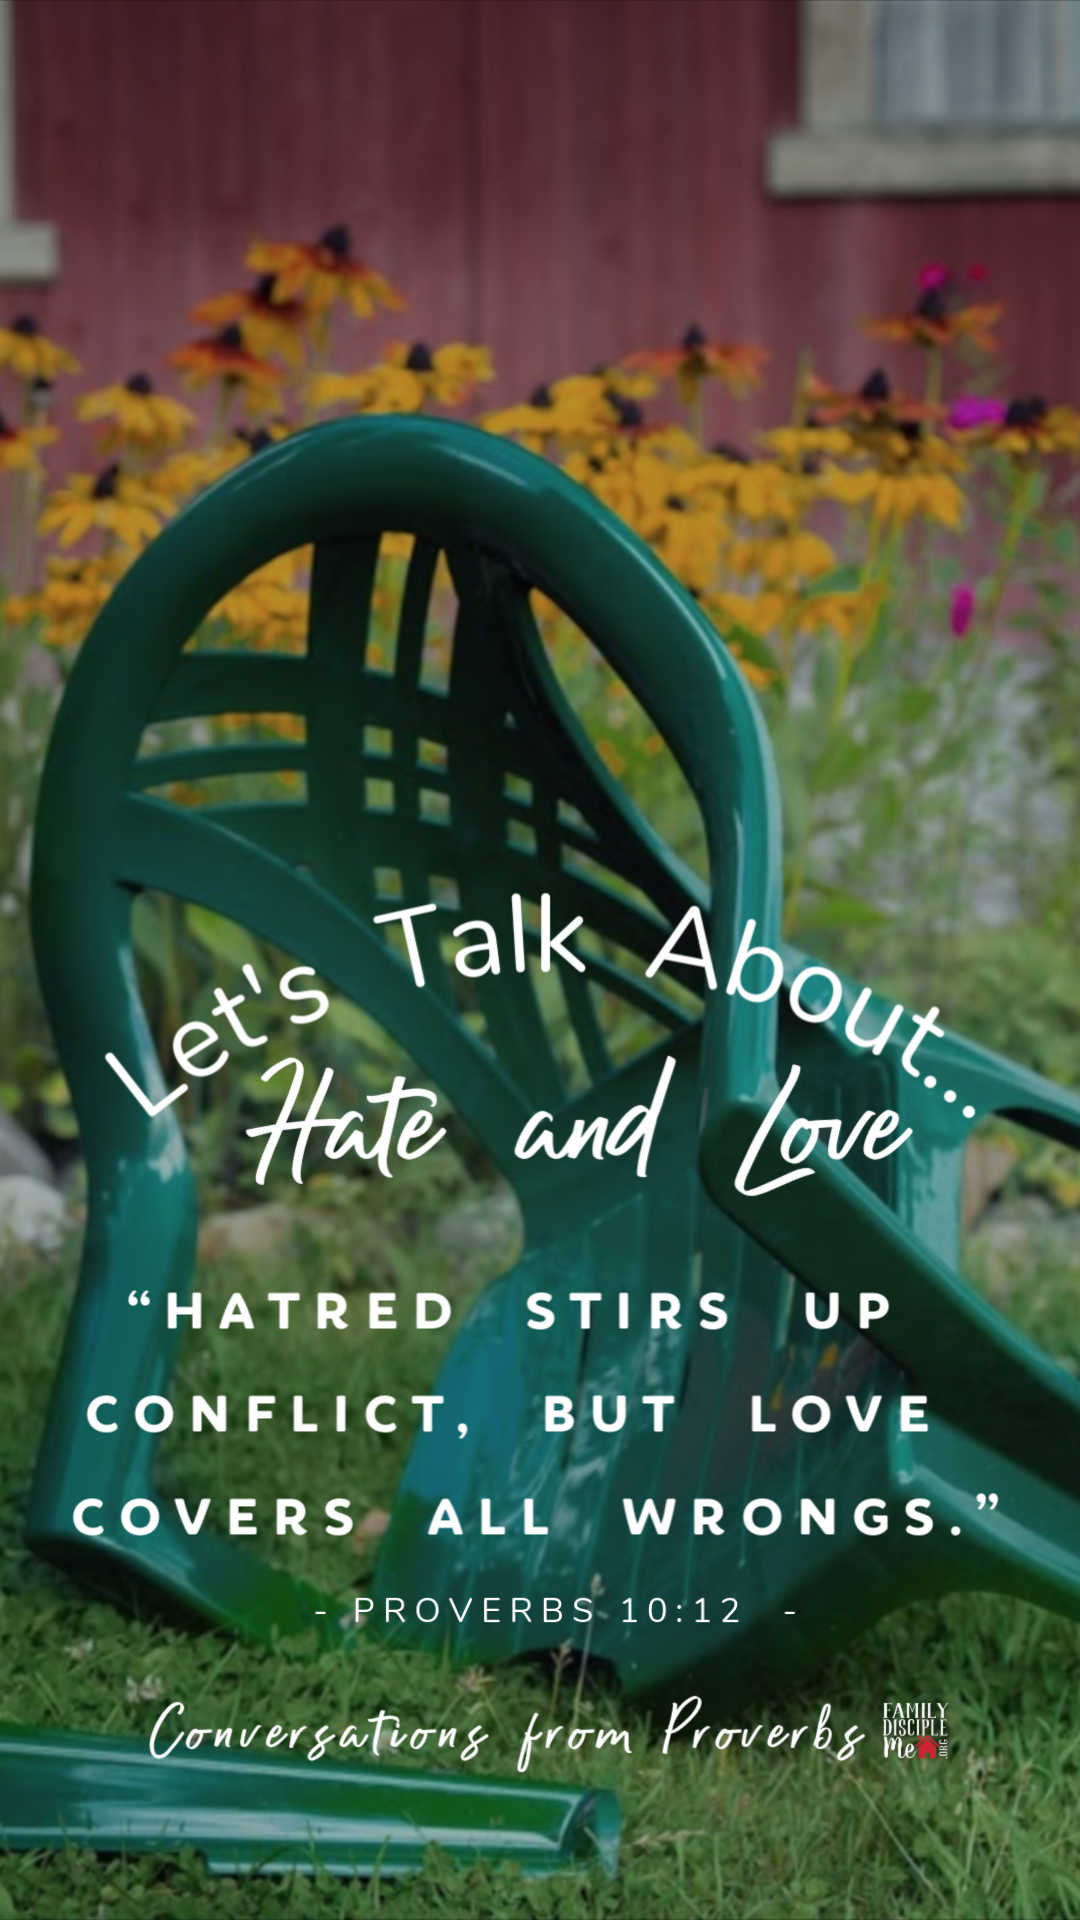 Lets Talk Love andHate